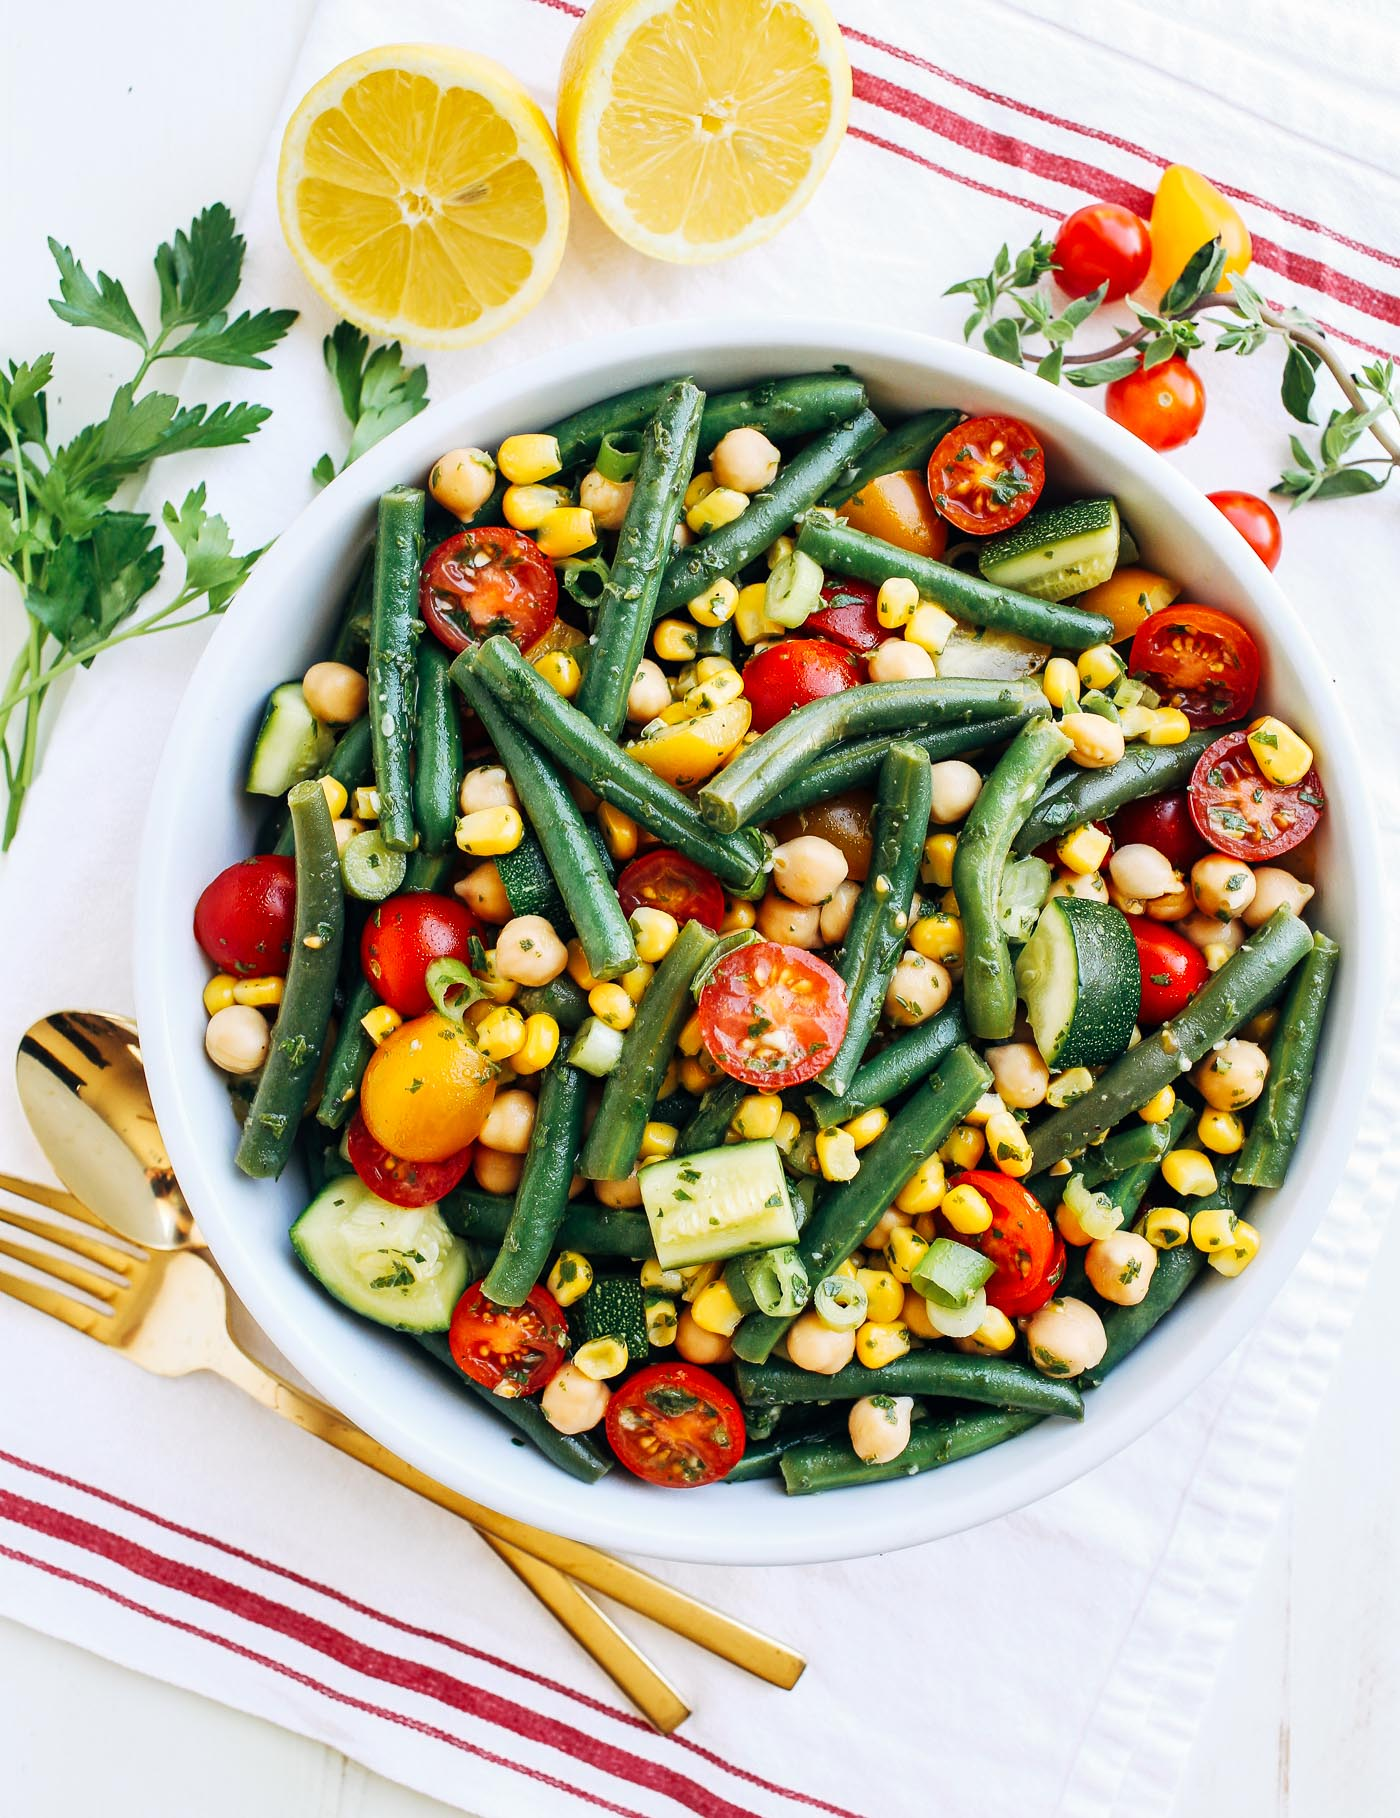 Summer Green Bean Salad + 6 recipes for your 4th of July picnic or barbecue!